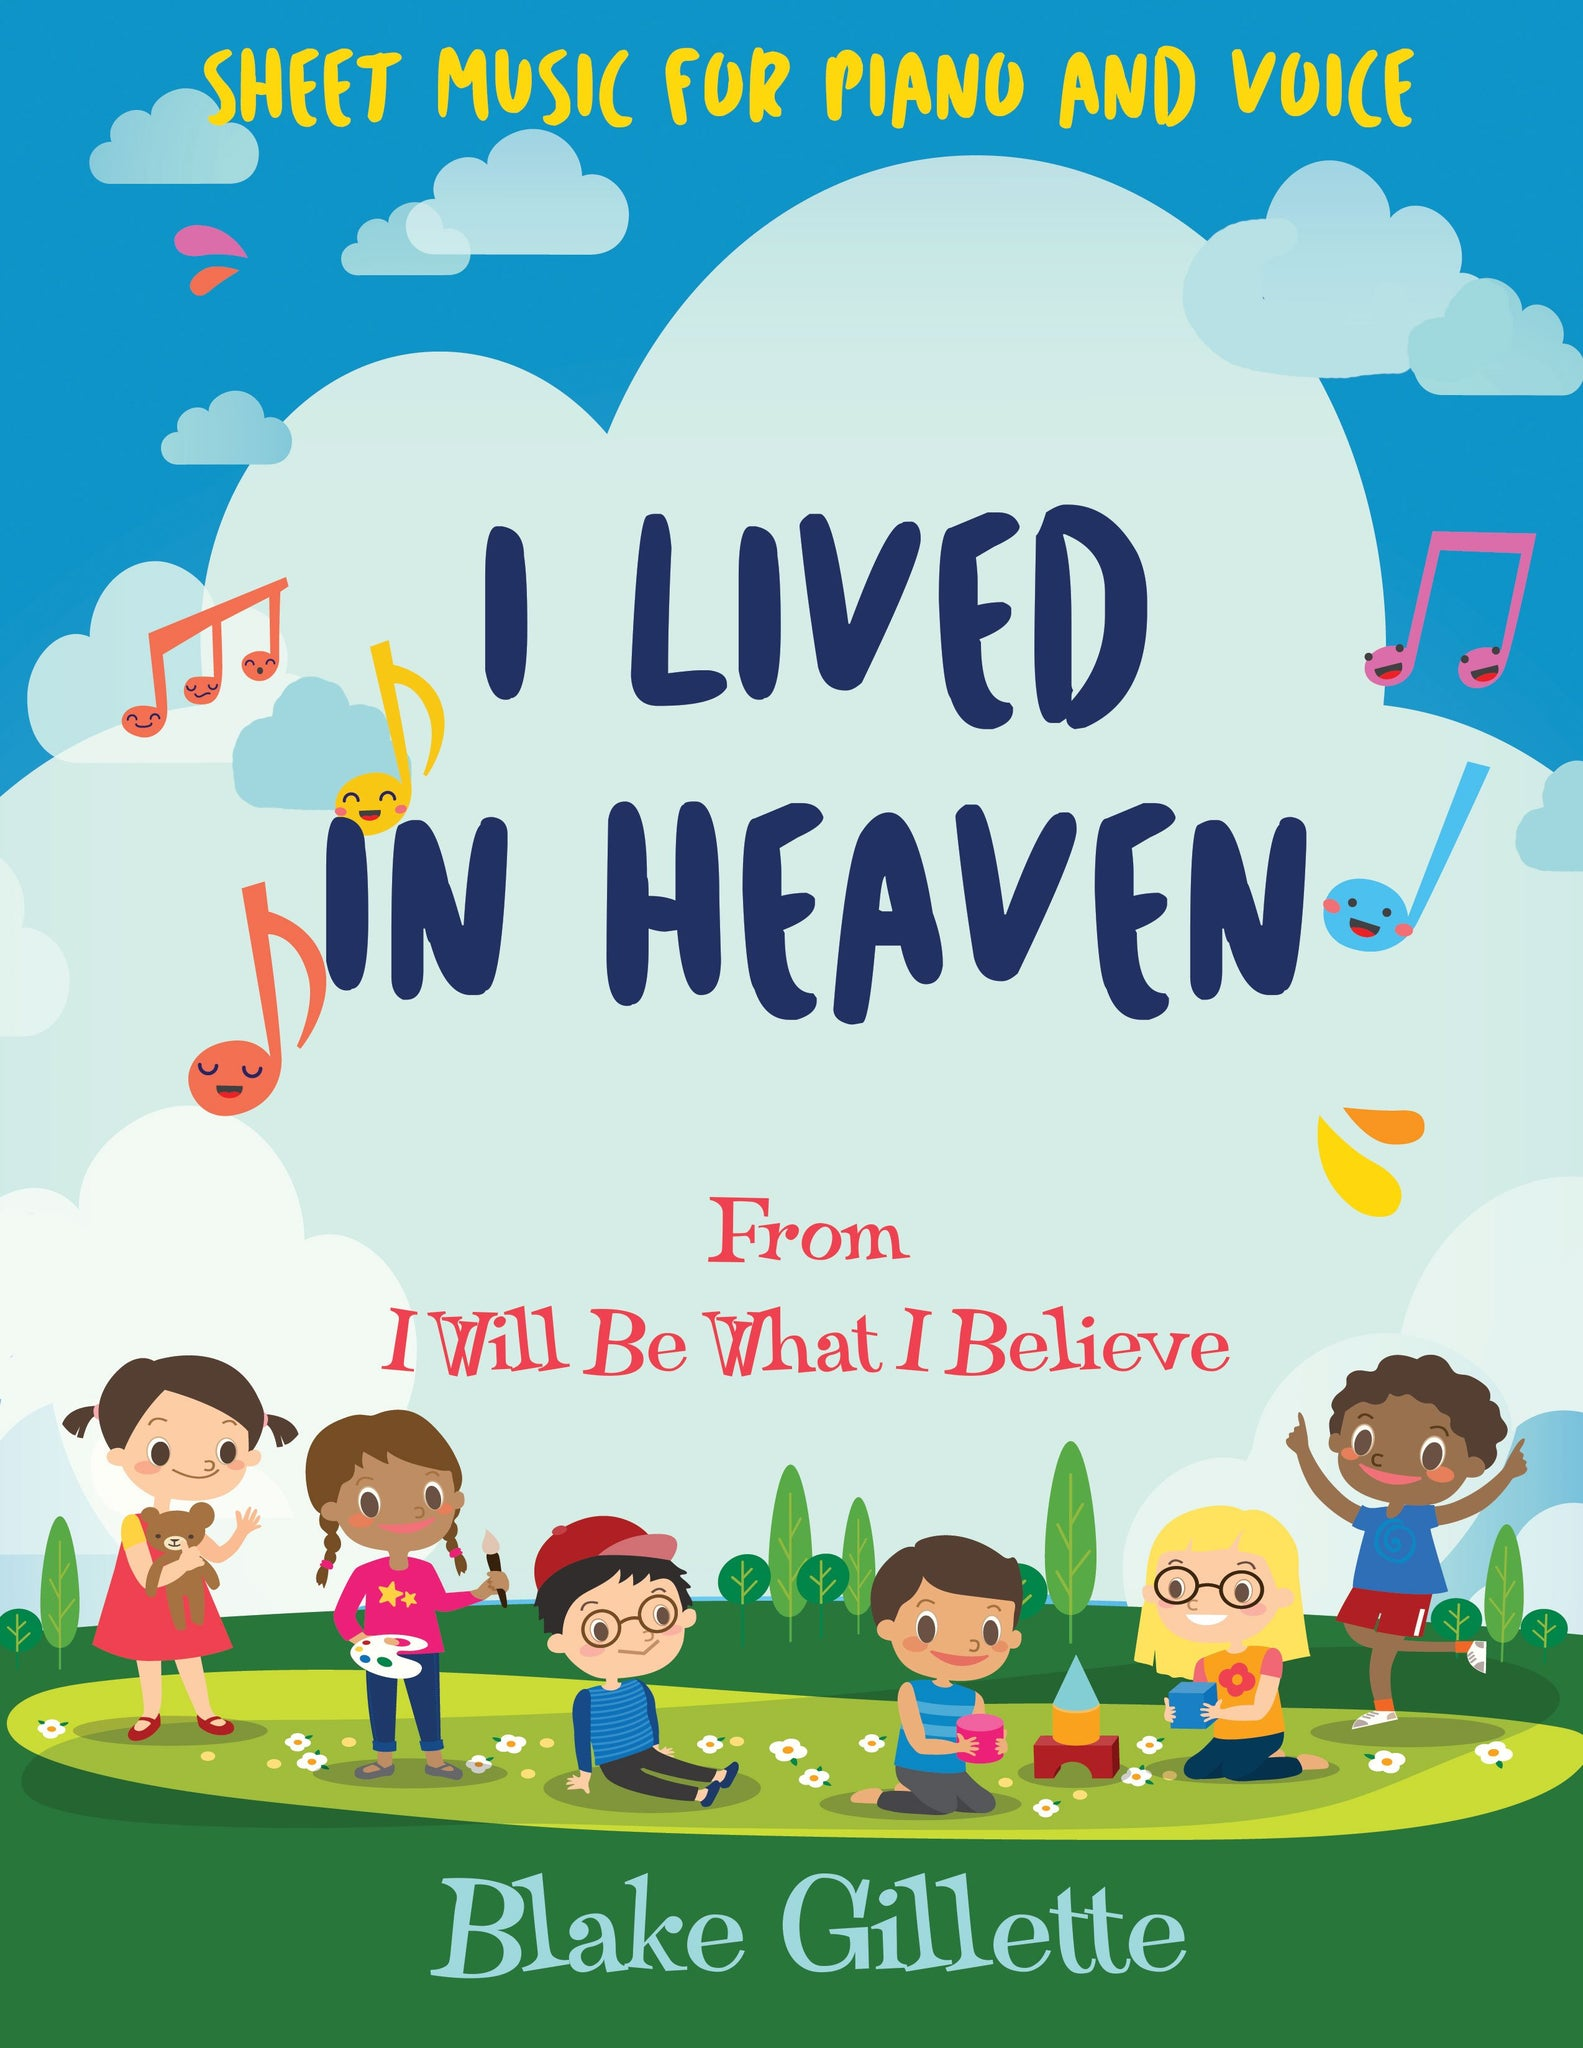 I Lived in Heaven - Sheet Music Download